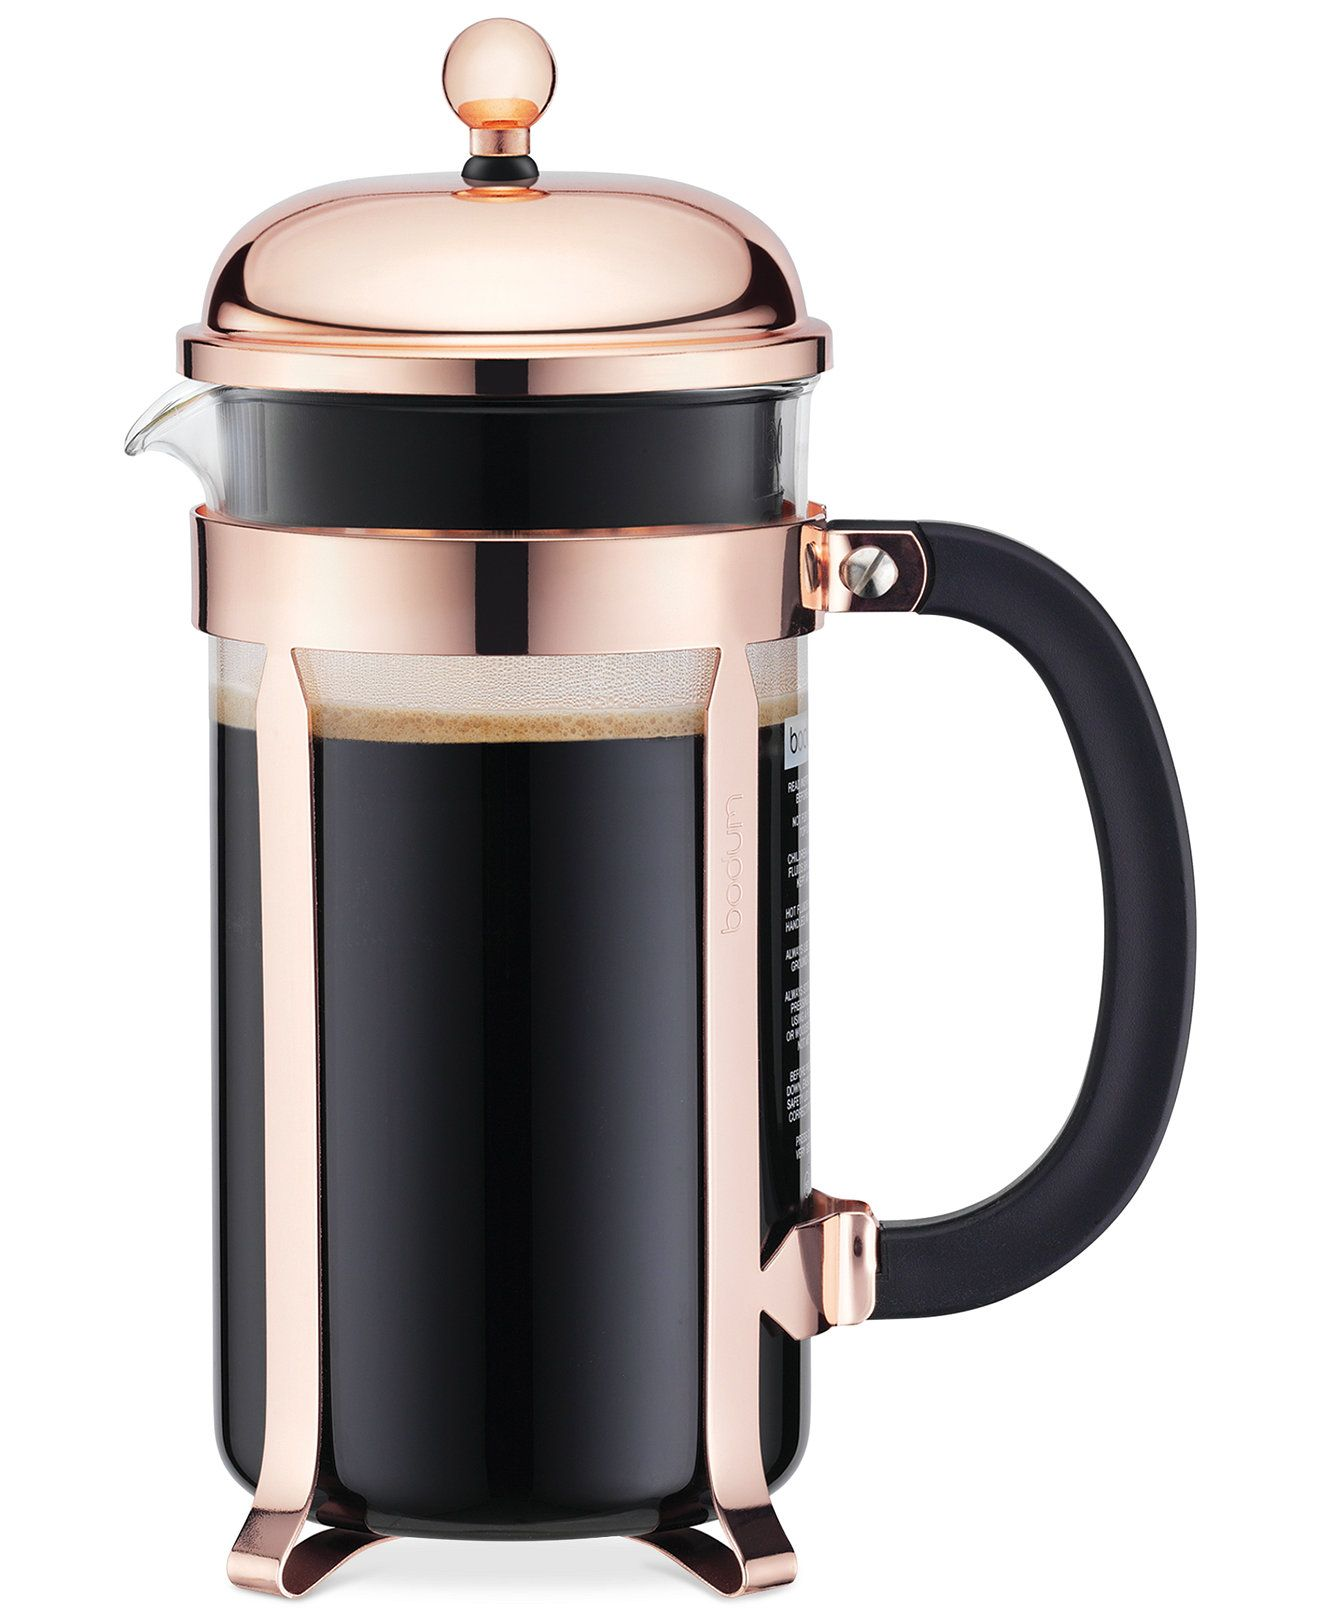 Bed bath beyond french press - Frieling Usa French Press 0104 104 6 7 Cup Coffee Maker Stainless Steel French Press Coffee Maker And Stainless Steel